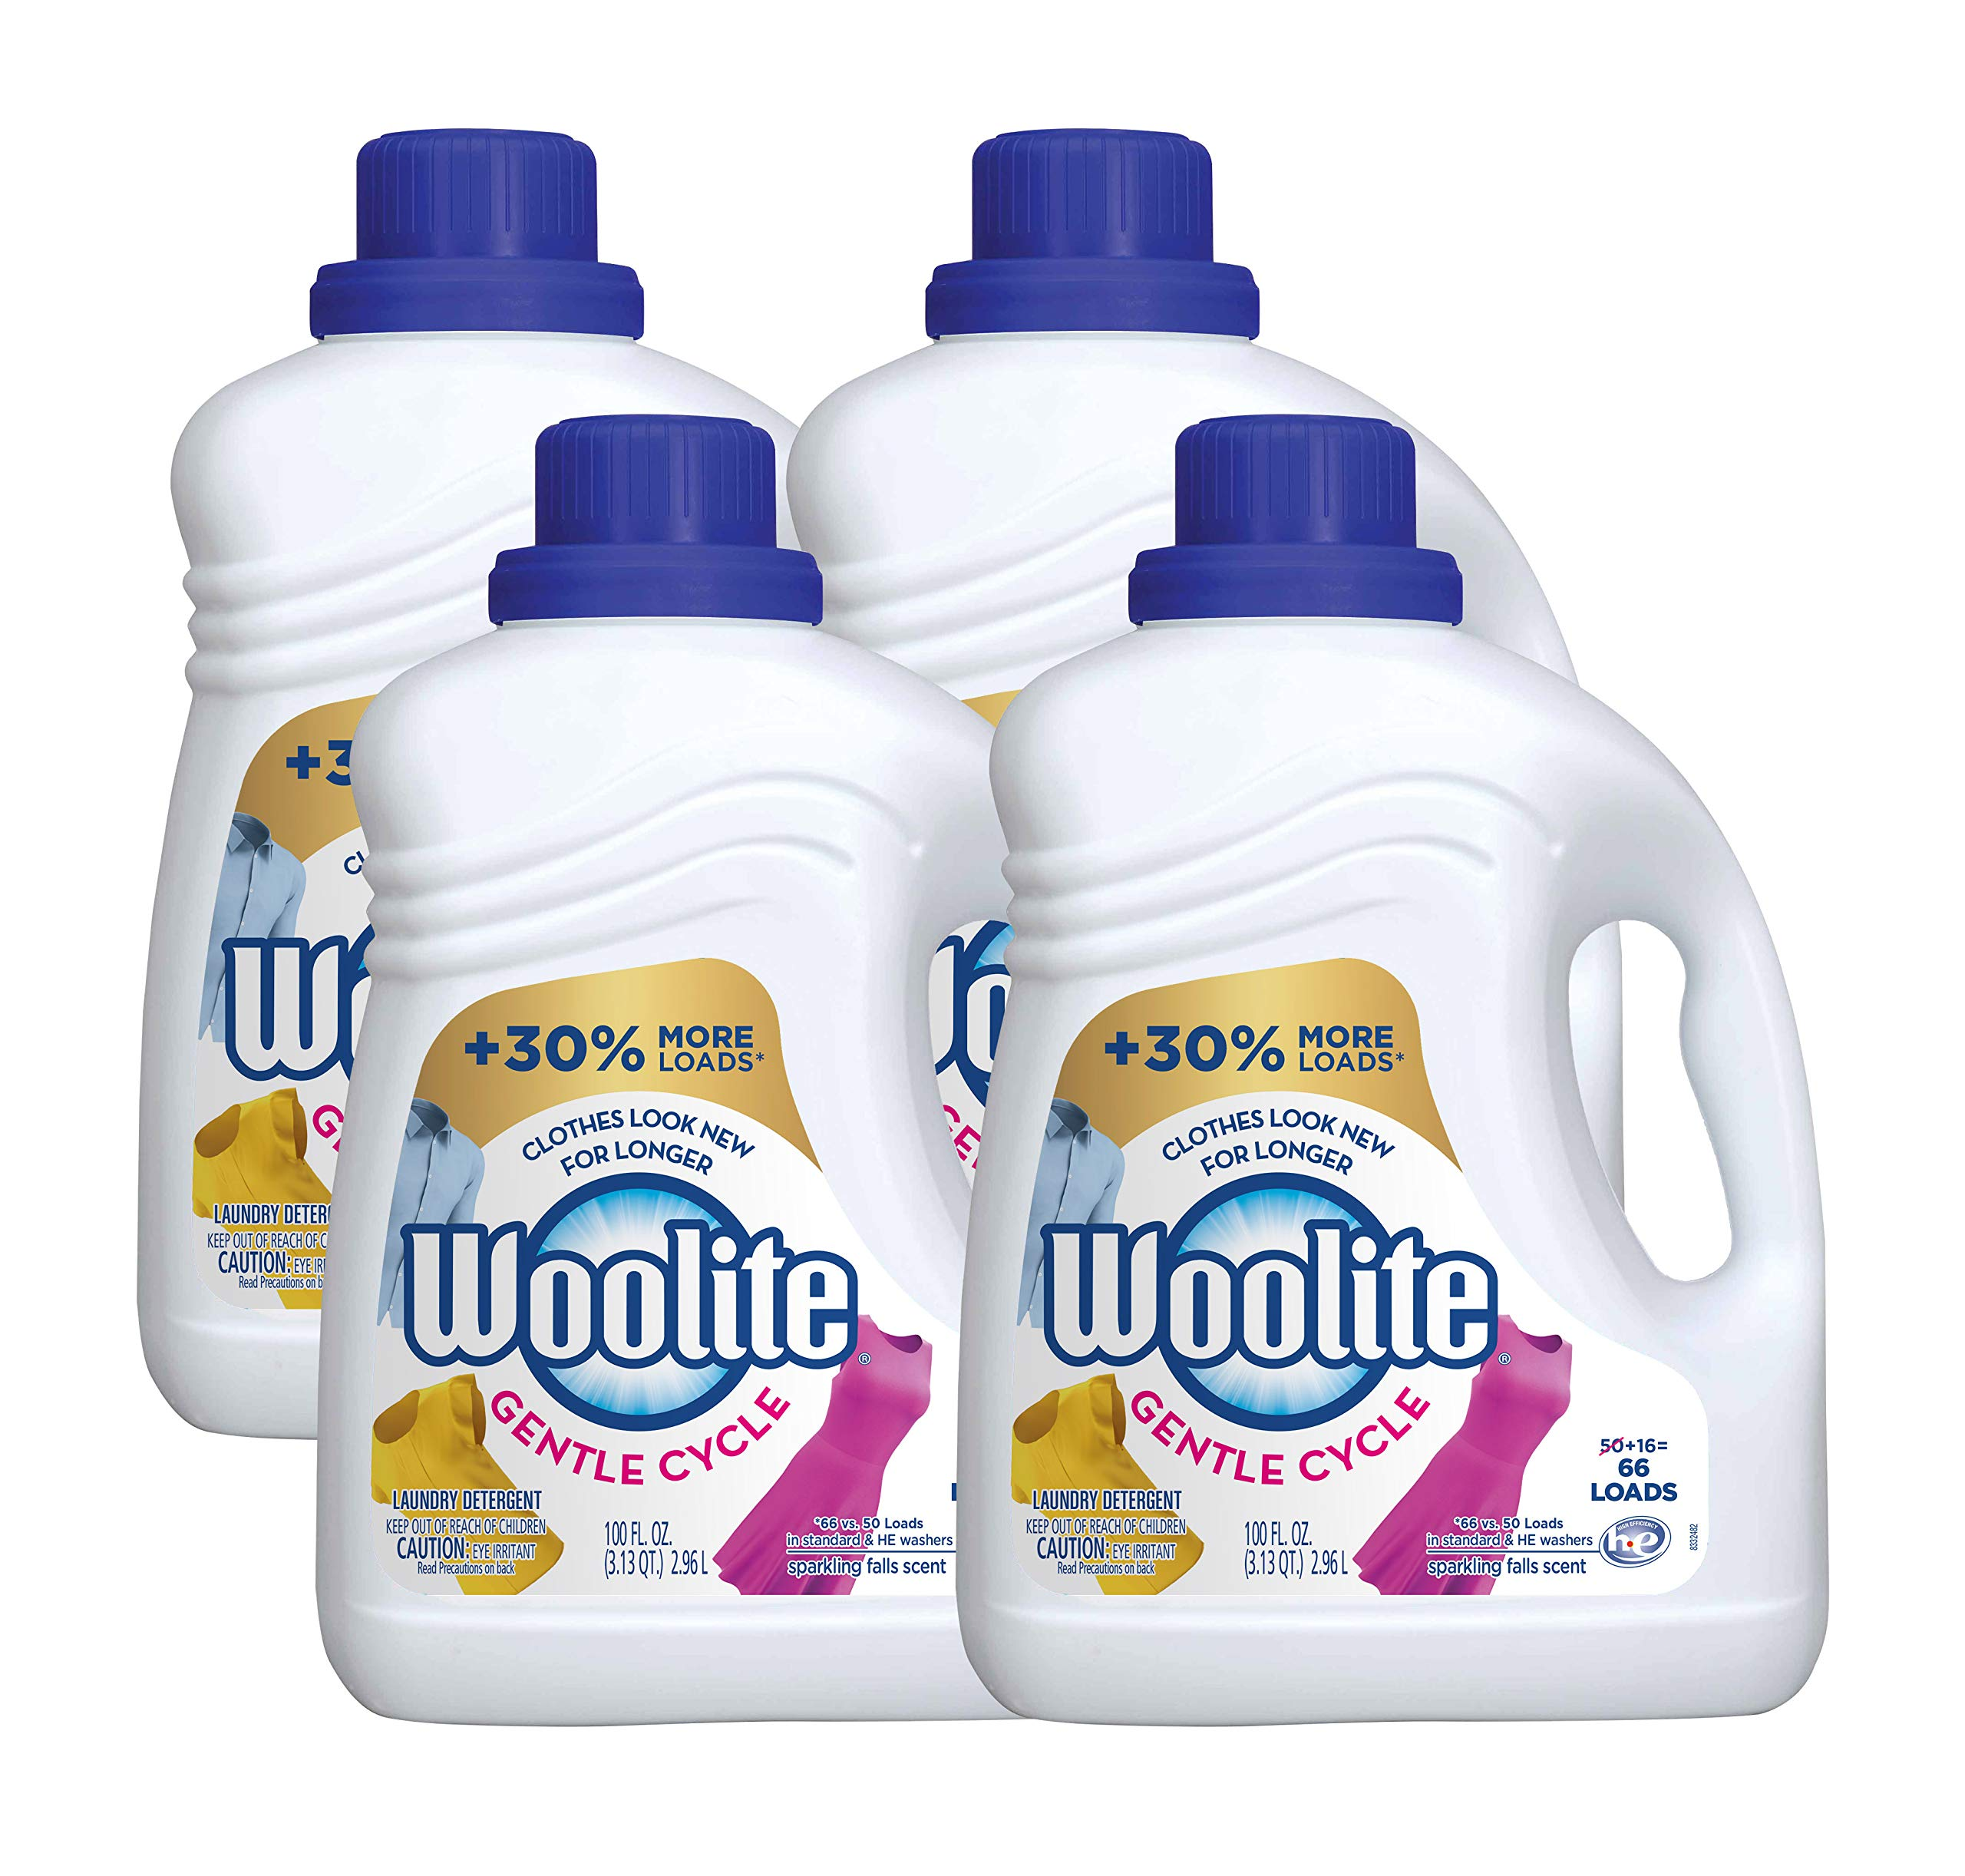 Woolite 0-62338-98113-0 Gentle Cycle Liquid Laundry Detergent with Color Renew, HE and Regular Washers, 400 fl. oz, 6.25 lb. (Pack of 4) by Woolite